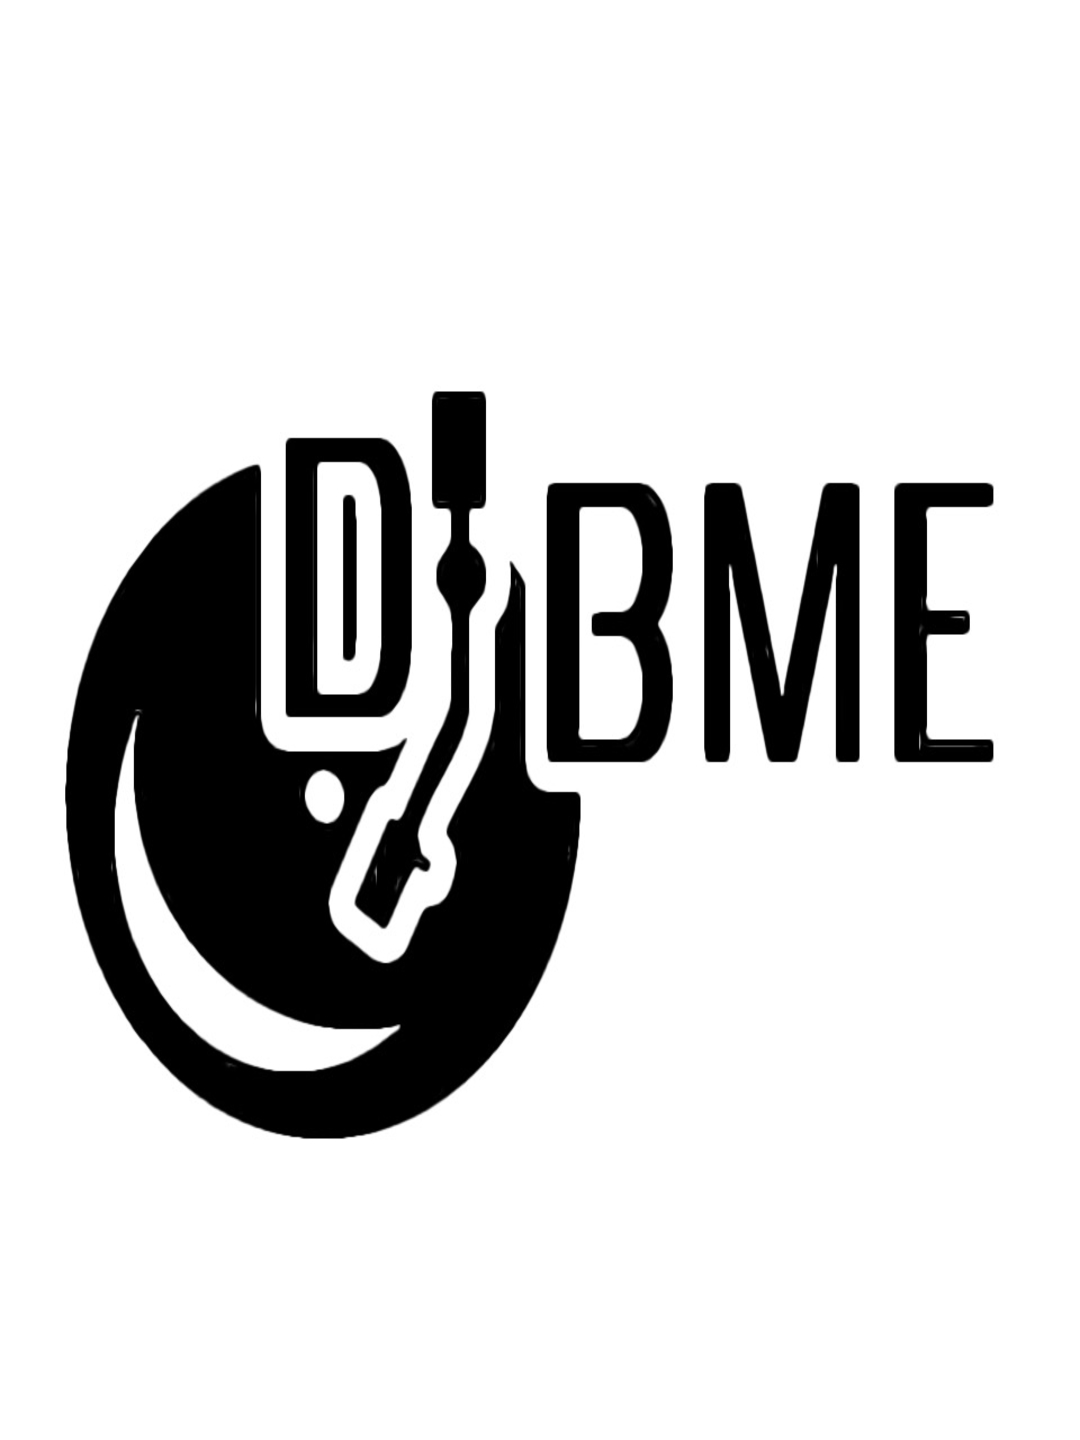 DJ BME Musik Mix Show album art